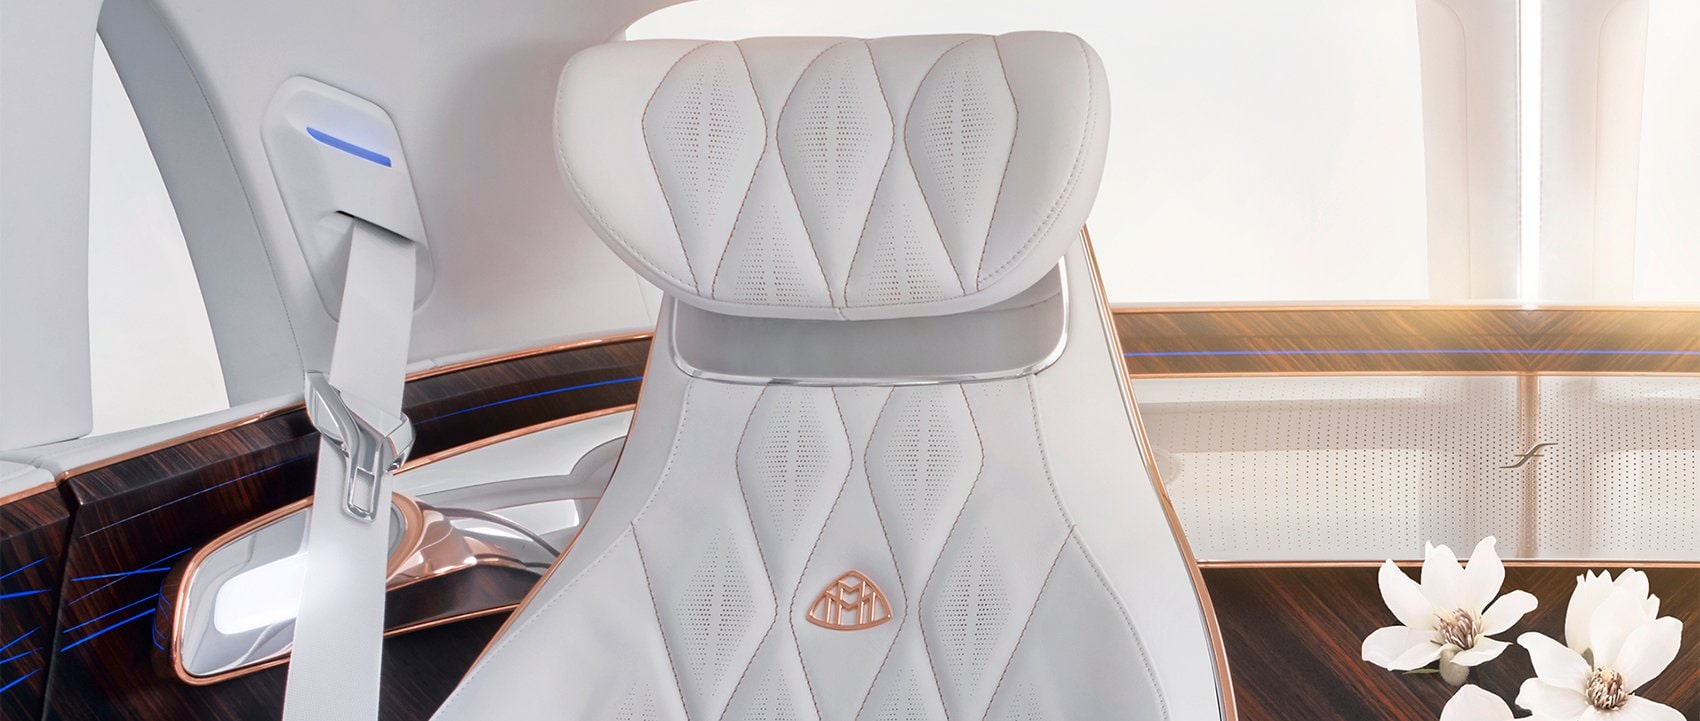 Mercedes-Benz background: Vision Mercedes-Maybach Ultimate Luxury interior.